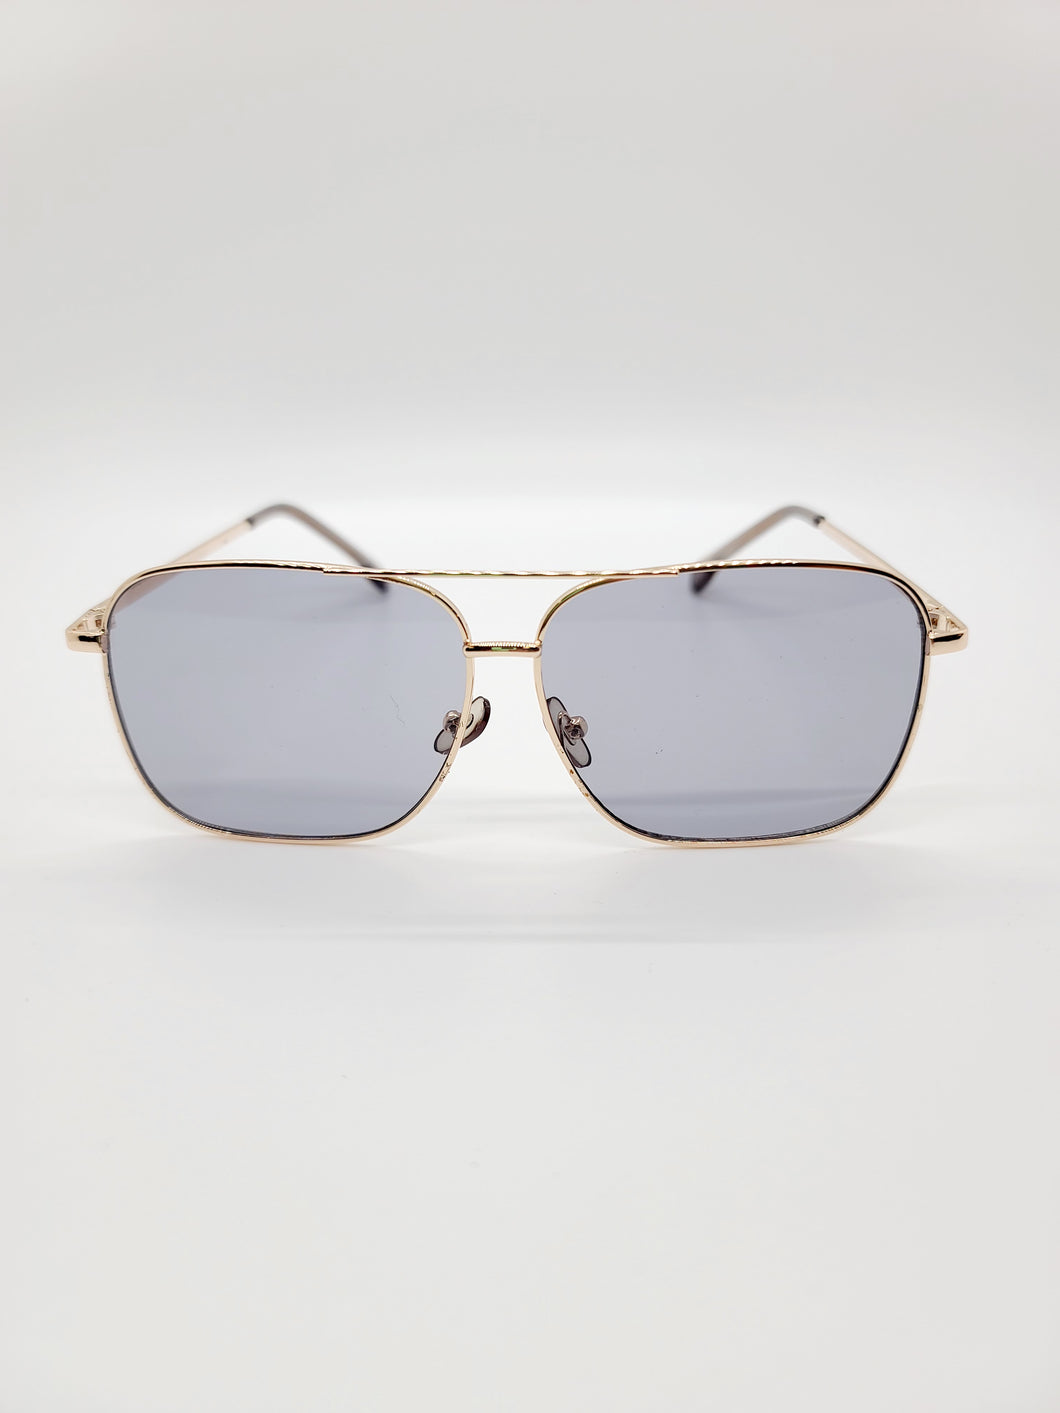 gray square golden wire frame aviator style sunglasses